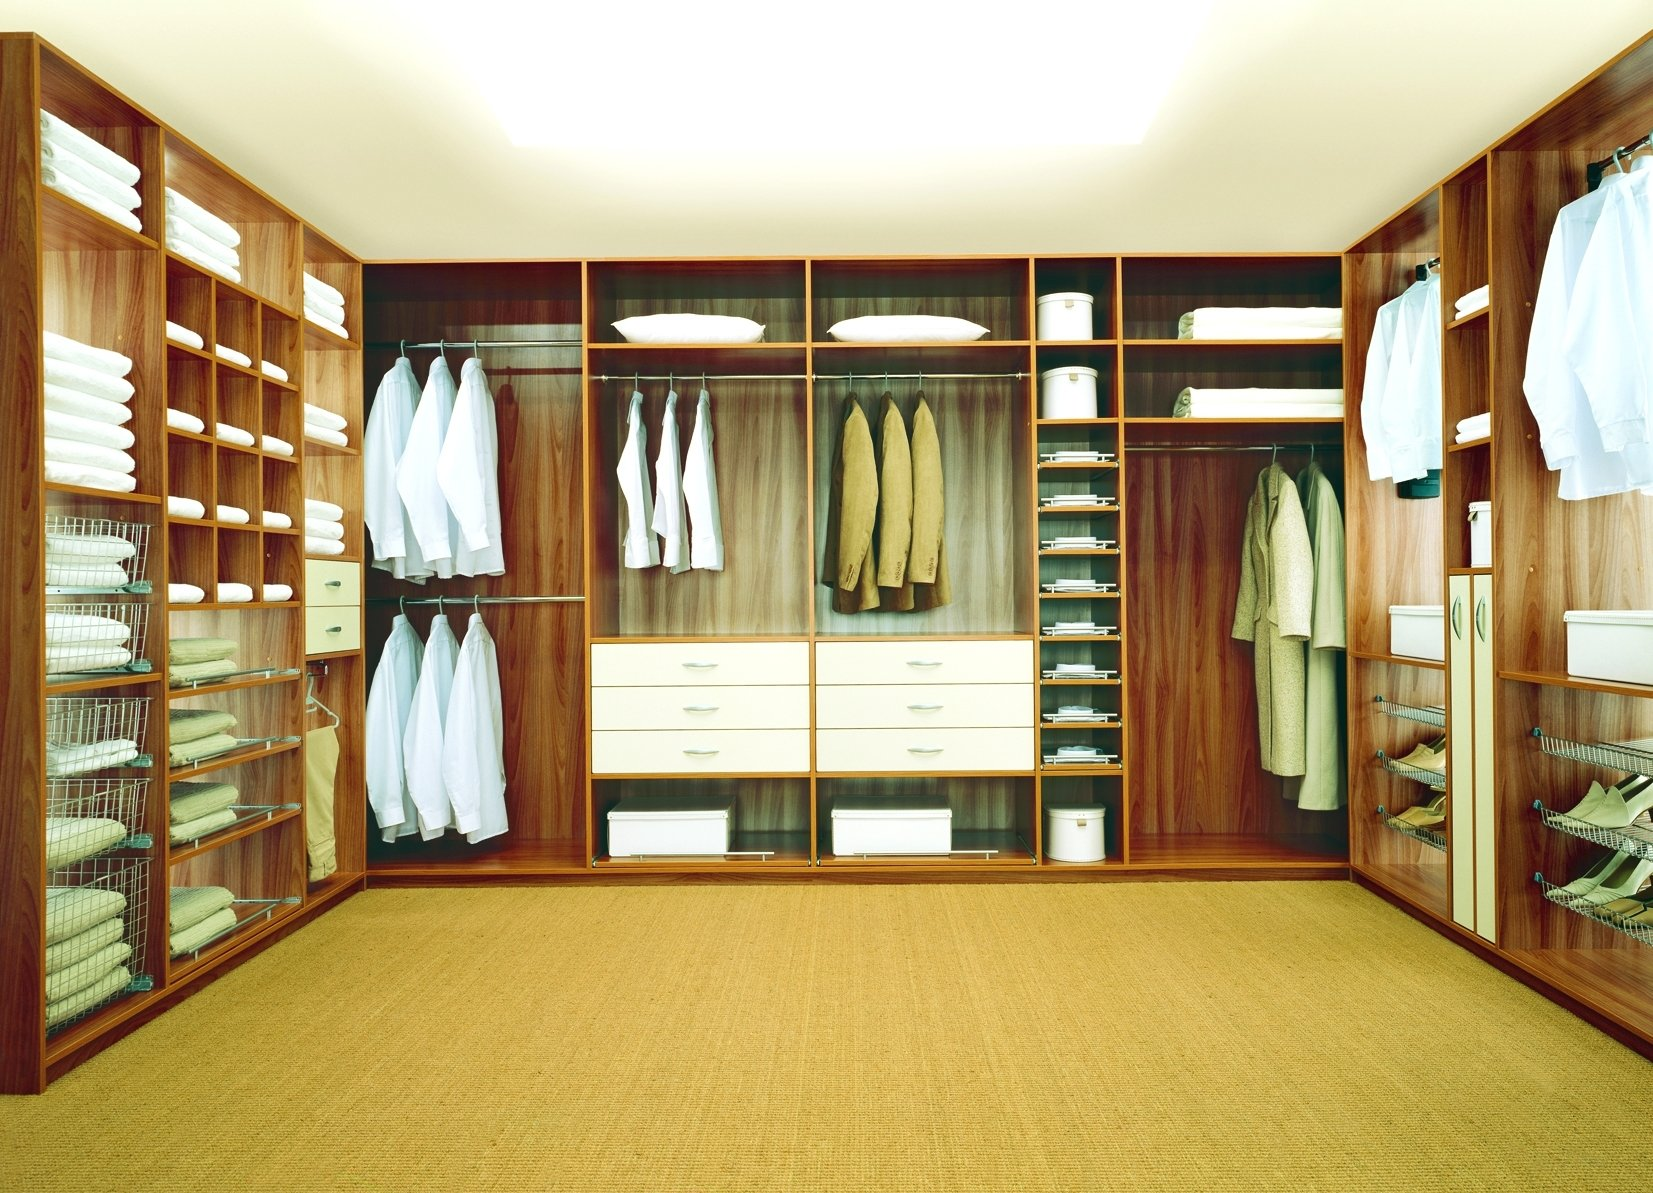 10 Awesome Ideas For Walk In Closets latest great walk in closet design ideas 34127 2020